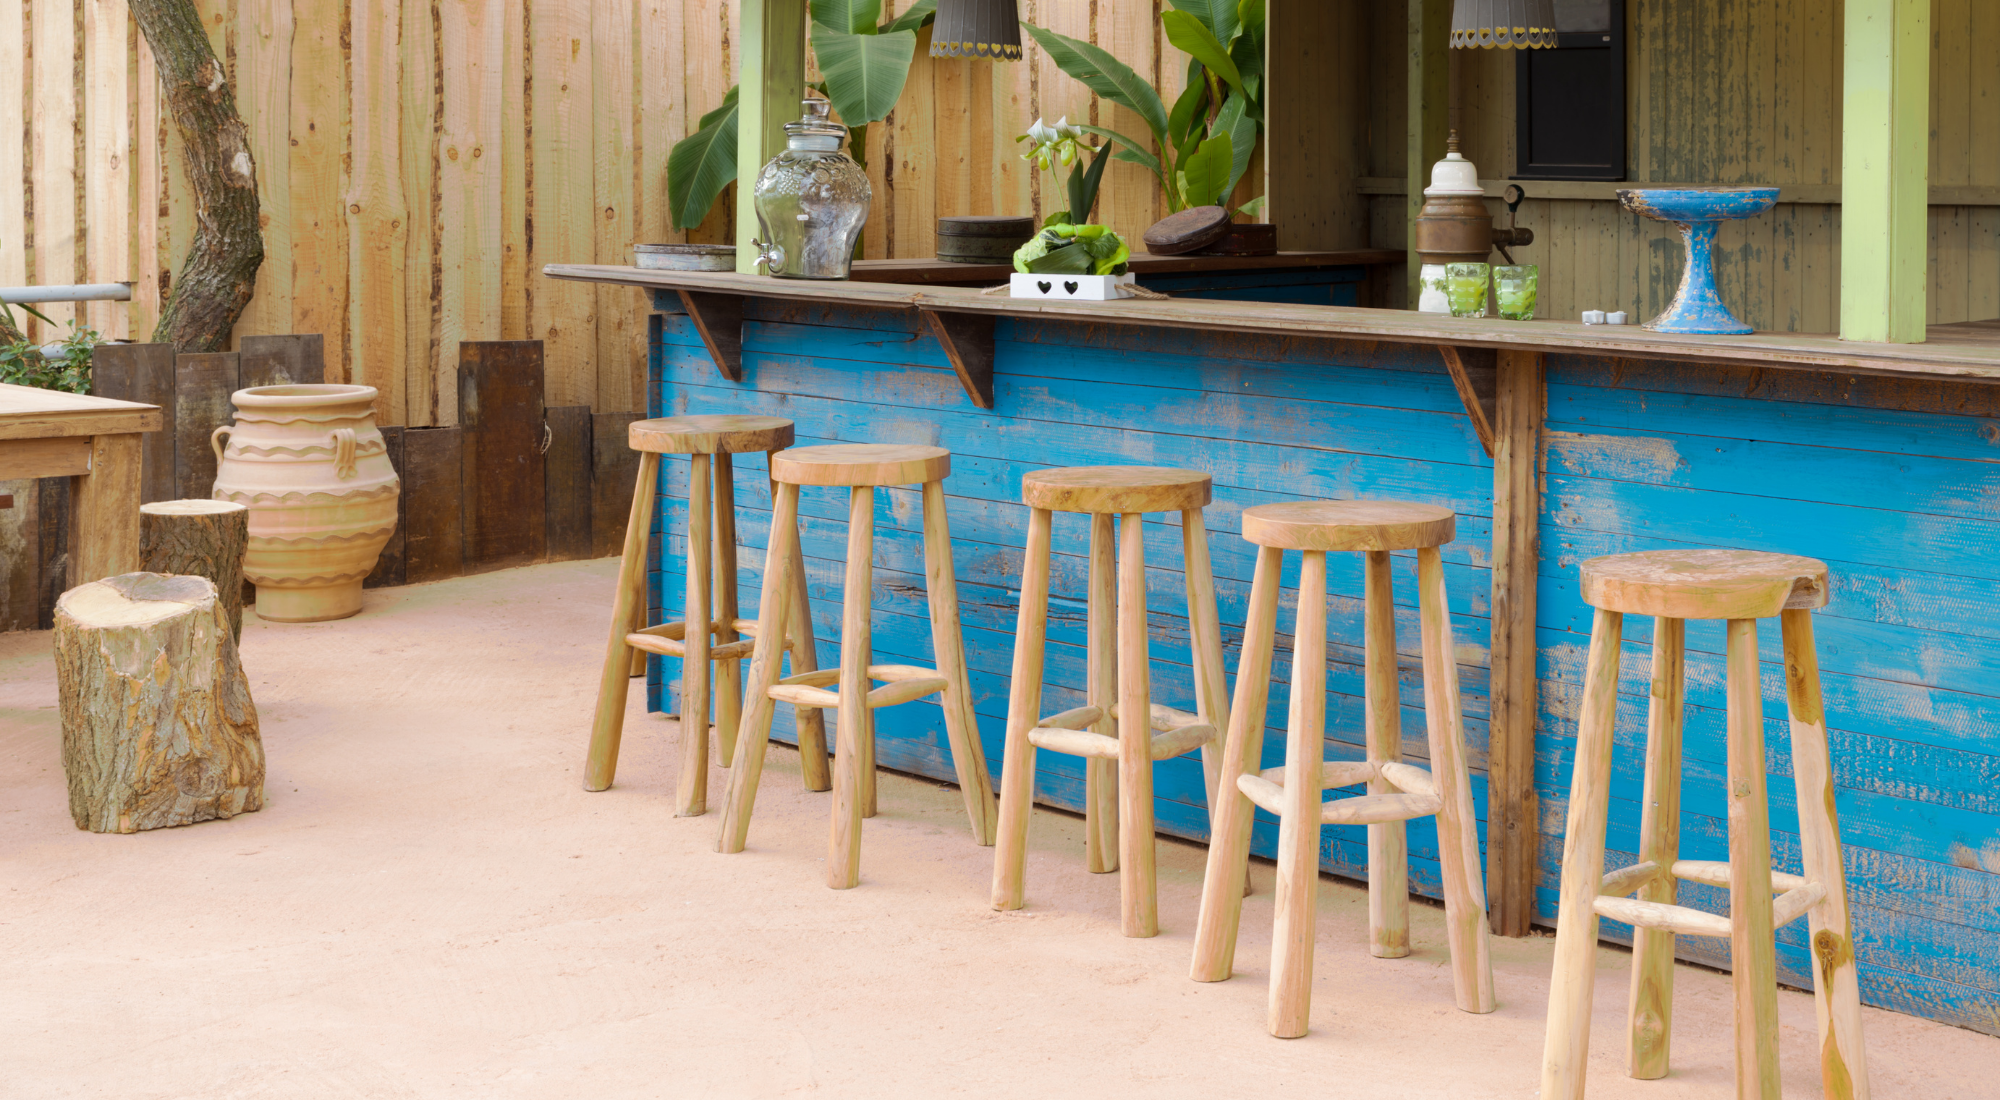 How to build a garden bar